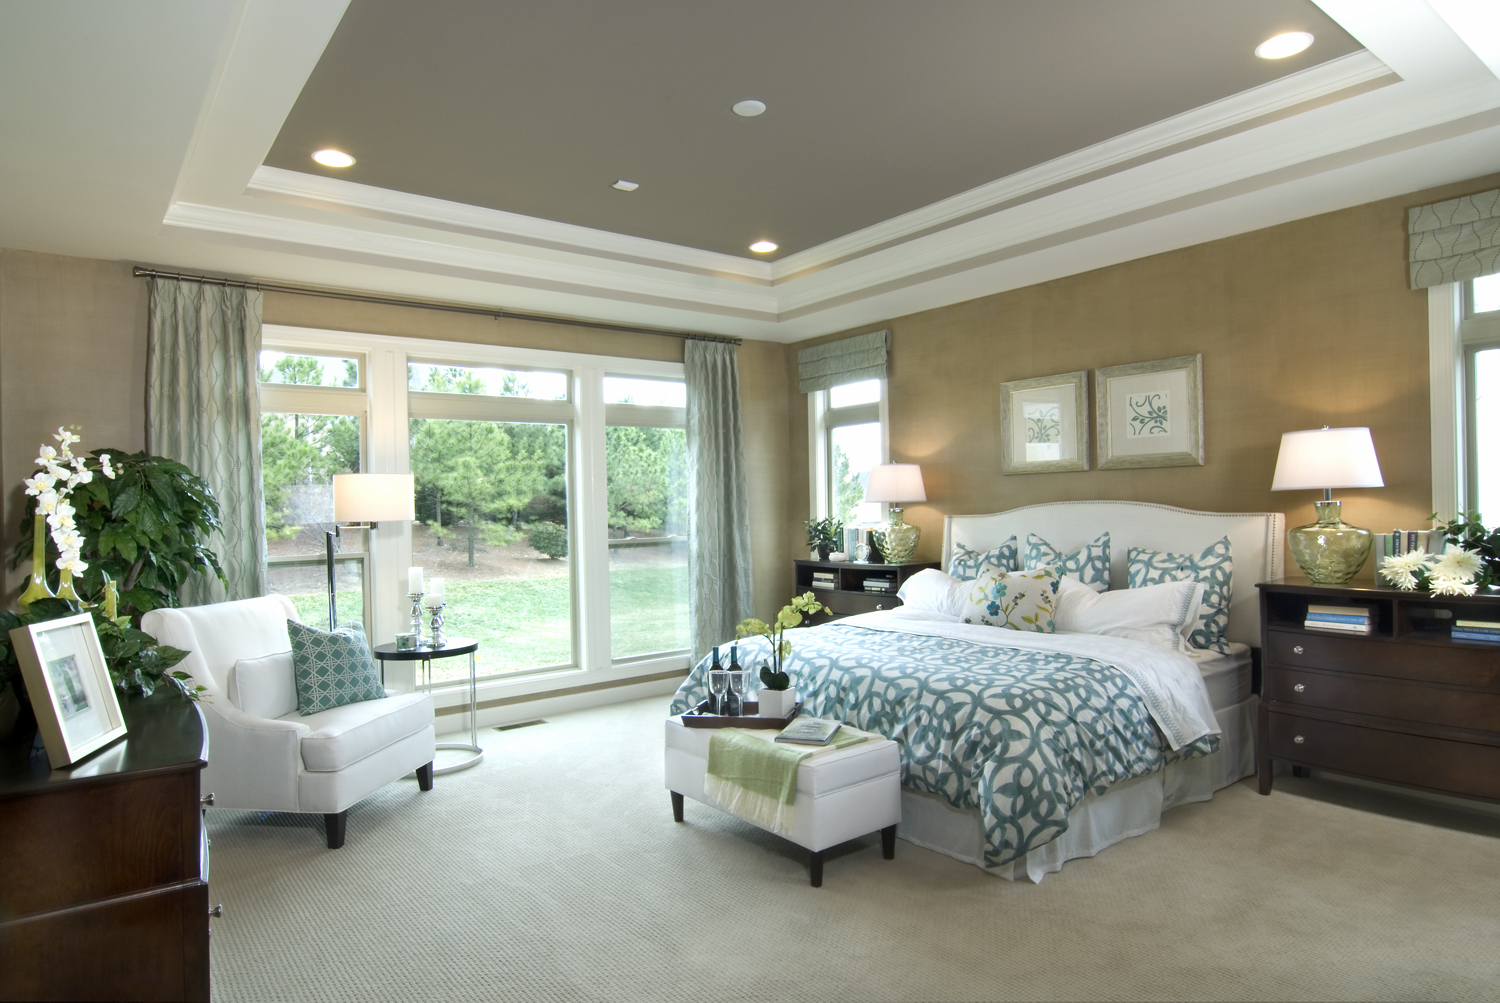 shea homes offers new homes near historic davidson nc. Black Bedroom Furniture Sets. Home Design Ideas